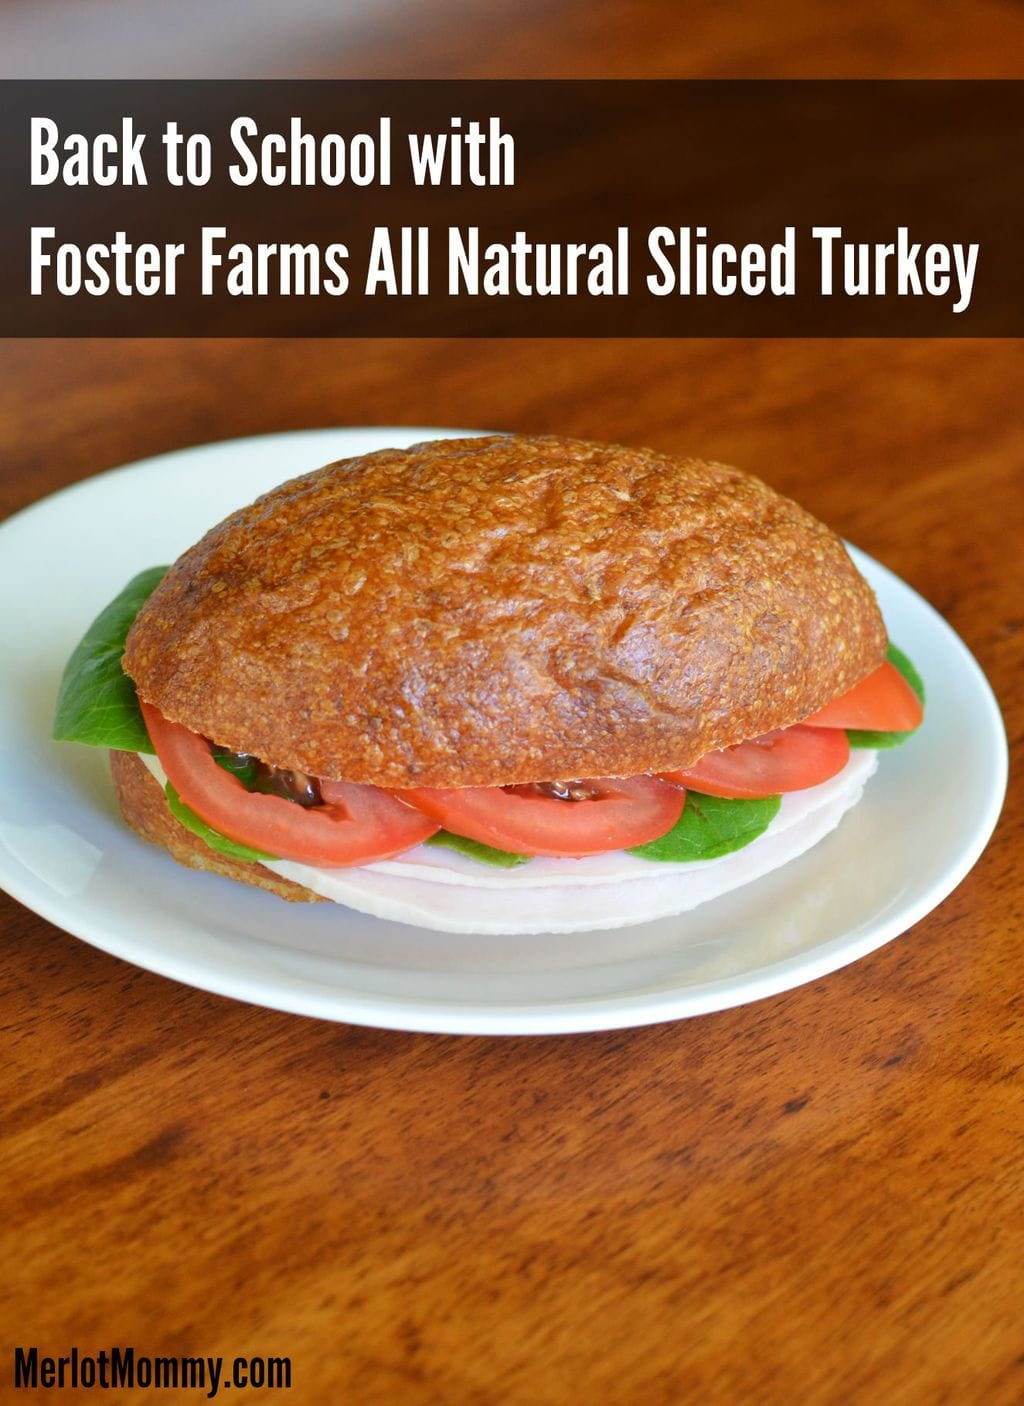 Back to School with Foster Farms All Natural Sliced Turkey #TurkeyTuesday